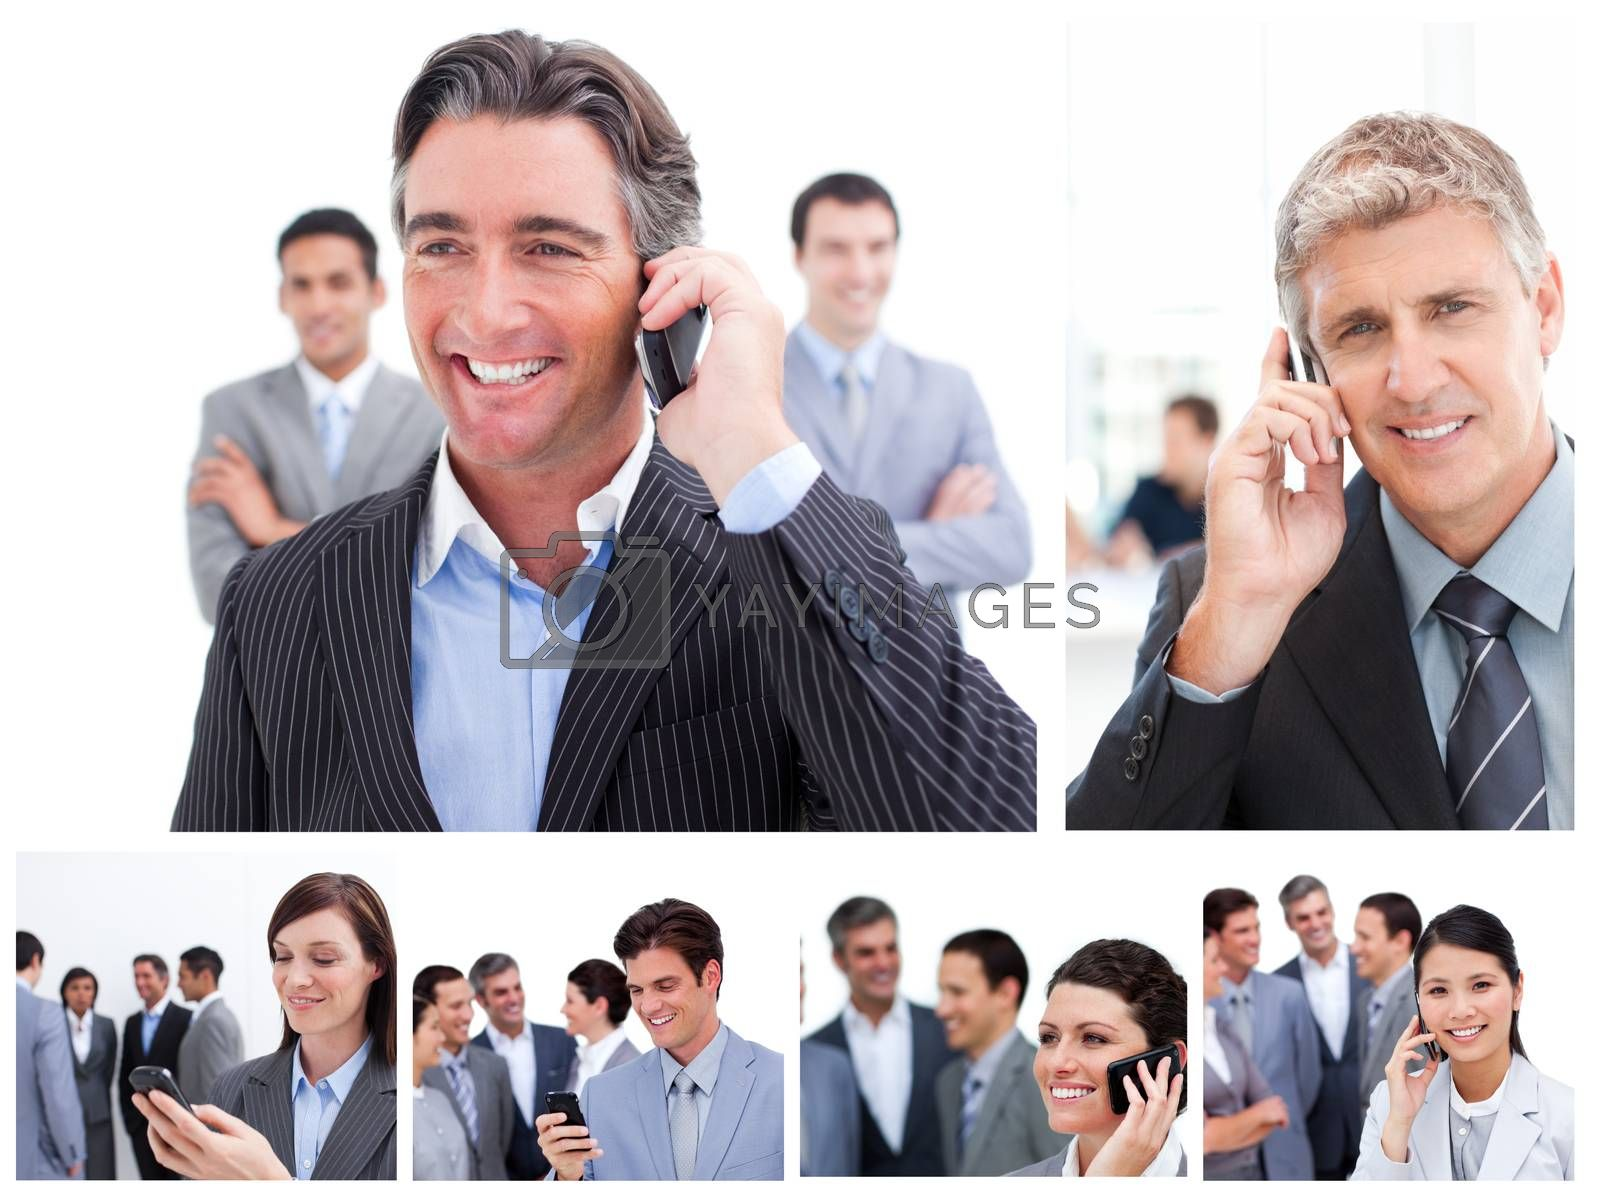 Collage of business people using mobil phones